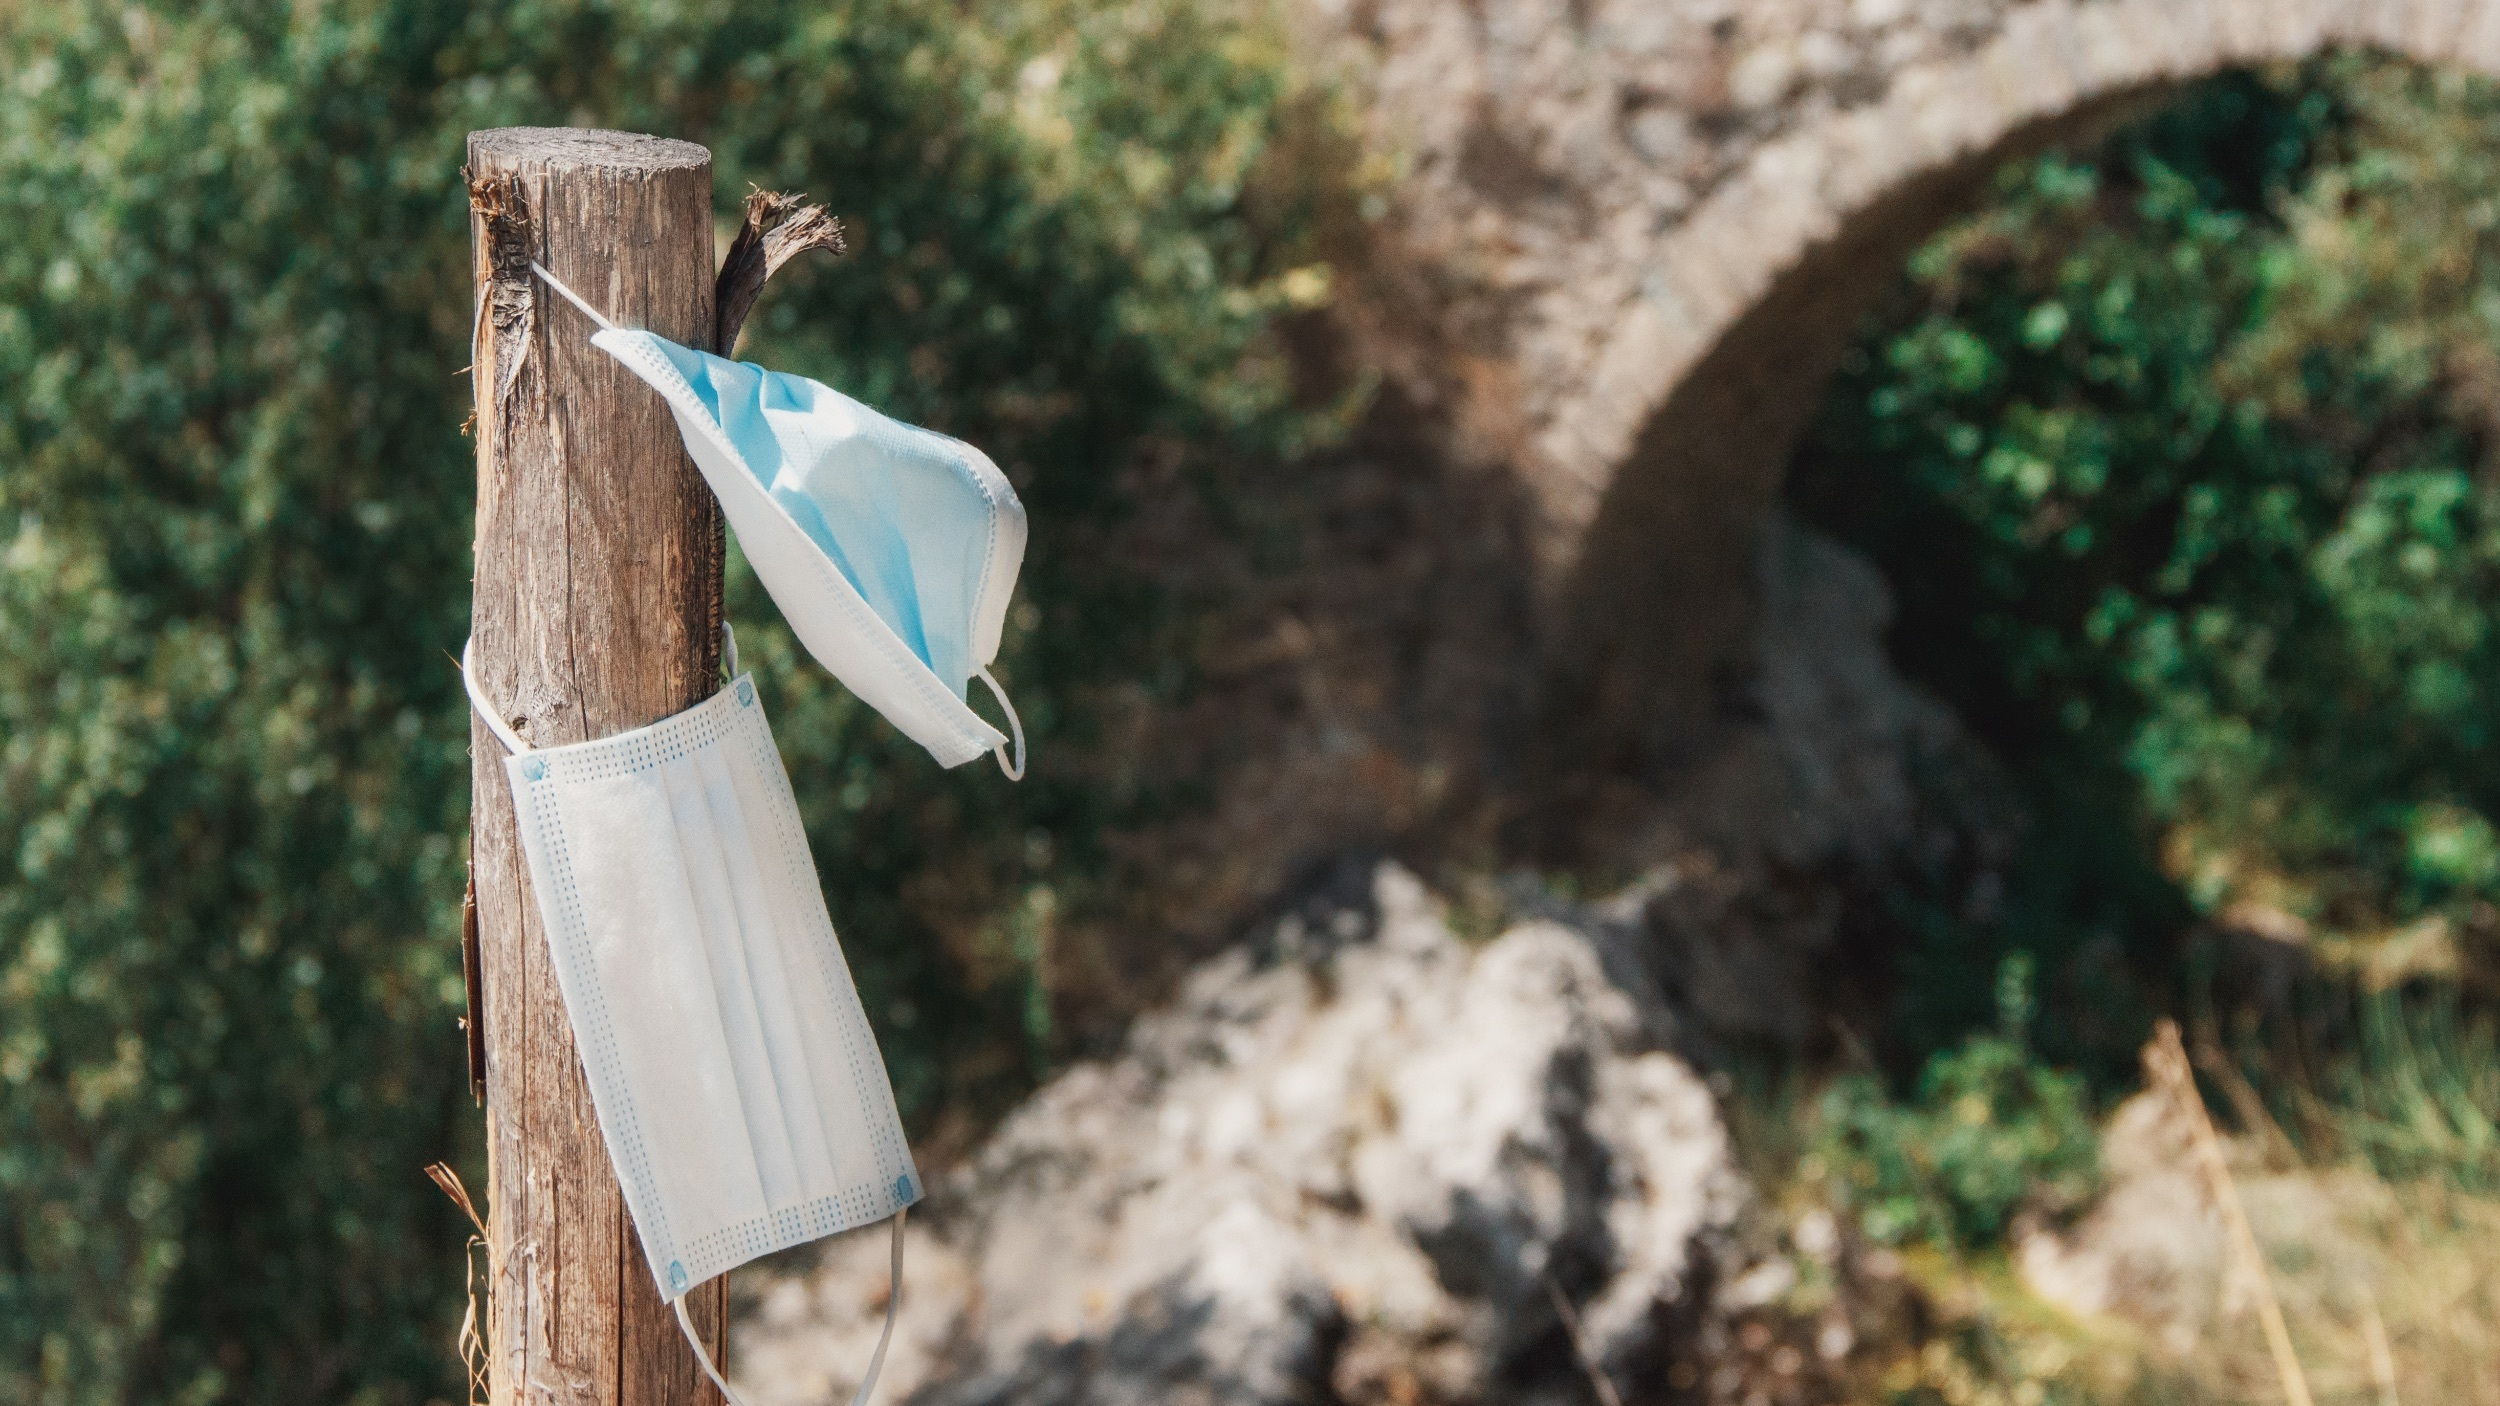 Used disposable masks hanging on a post in a forested area